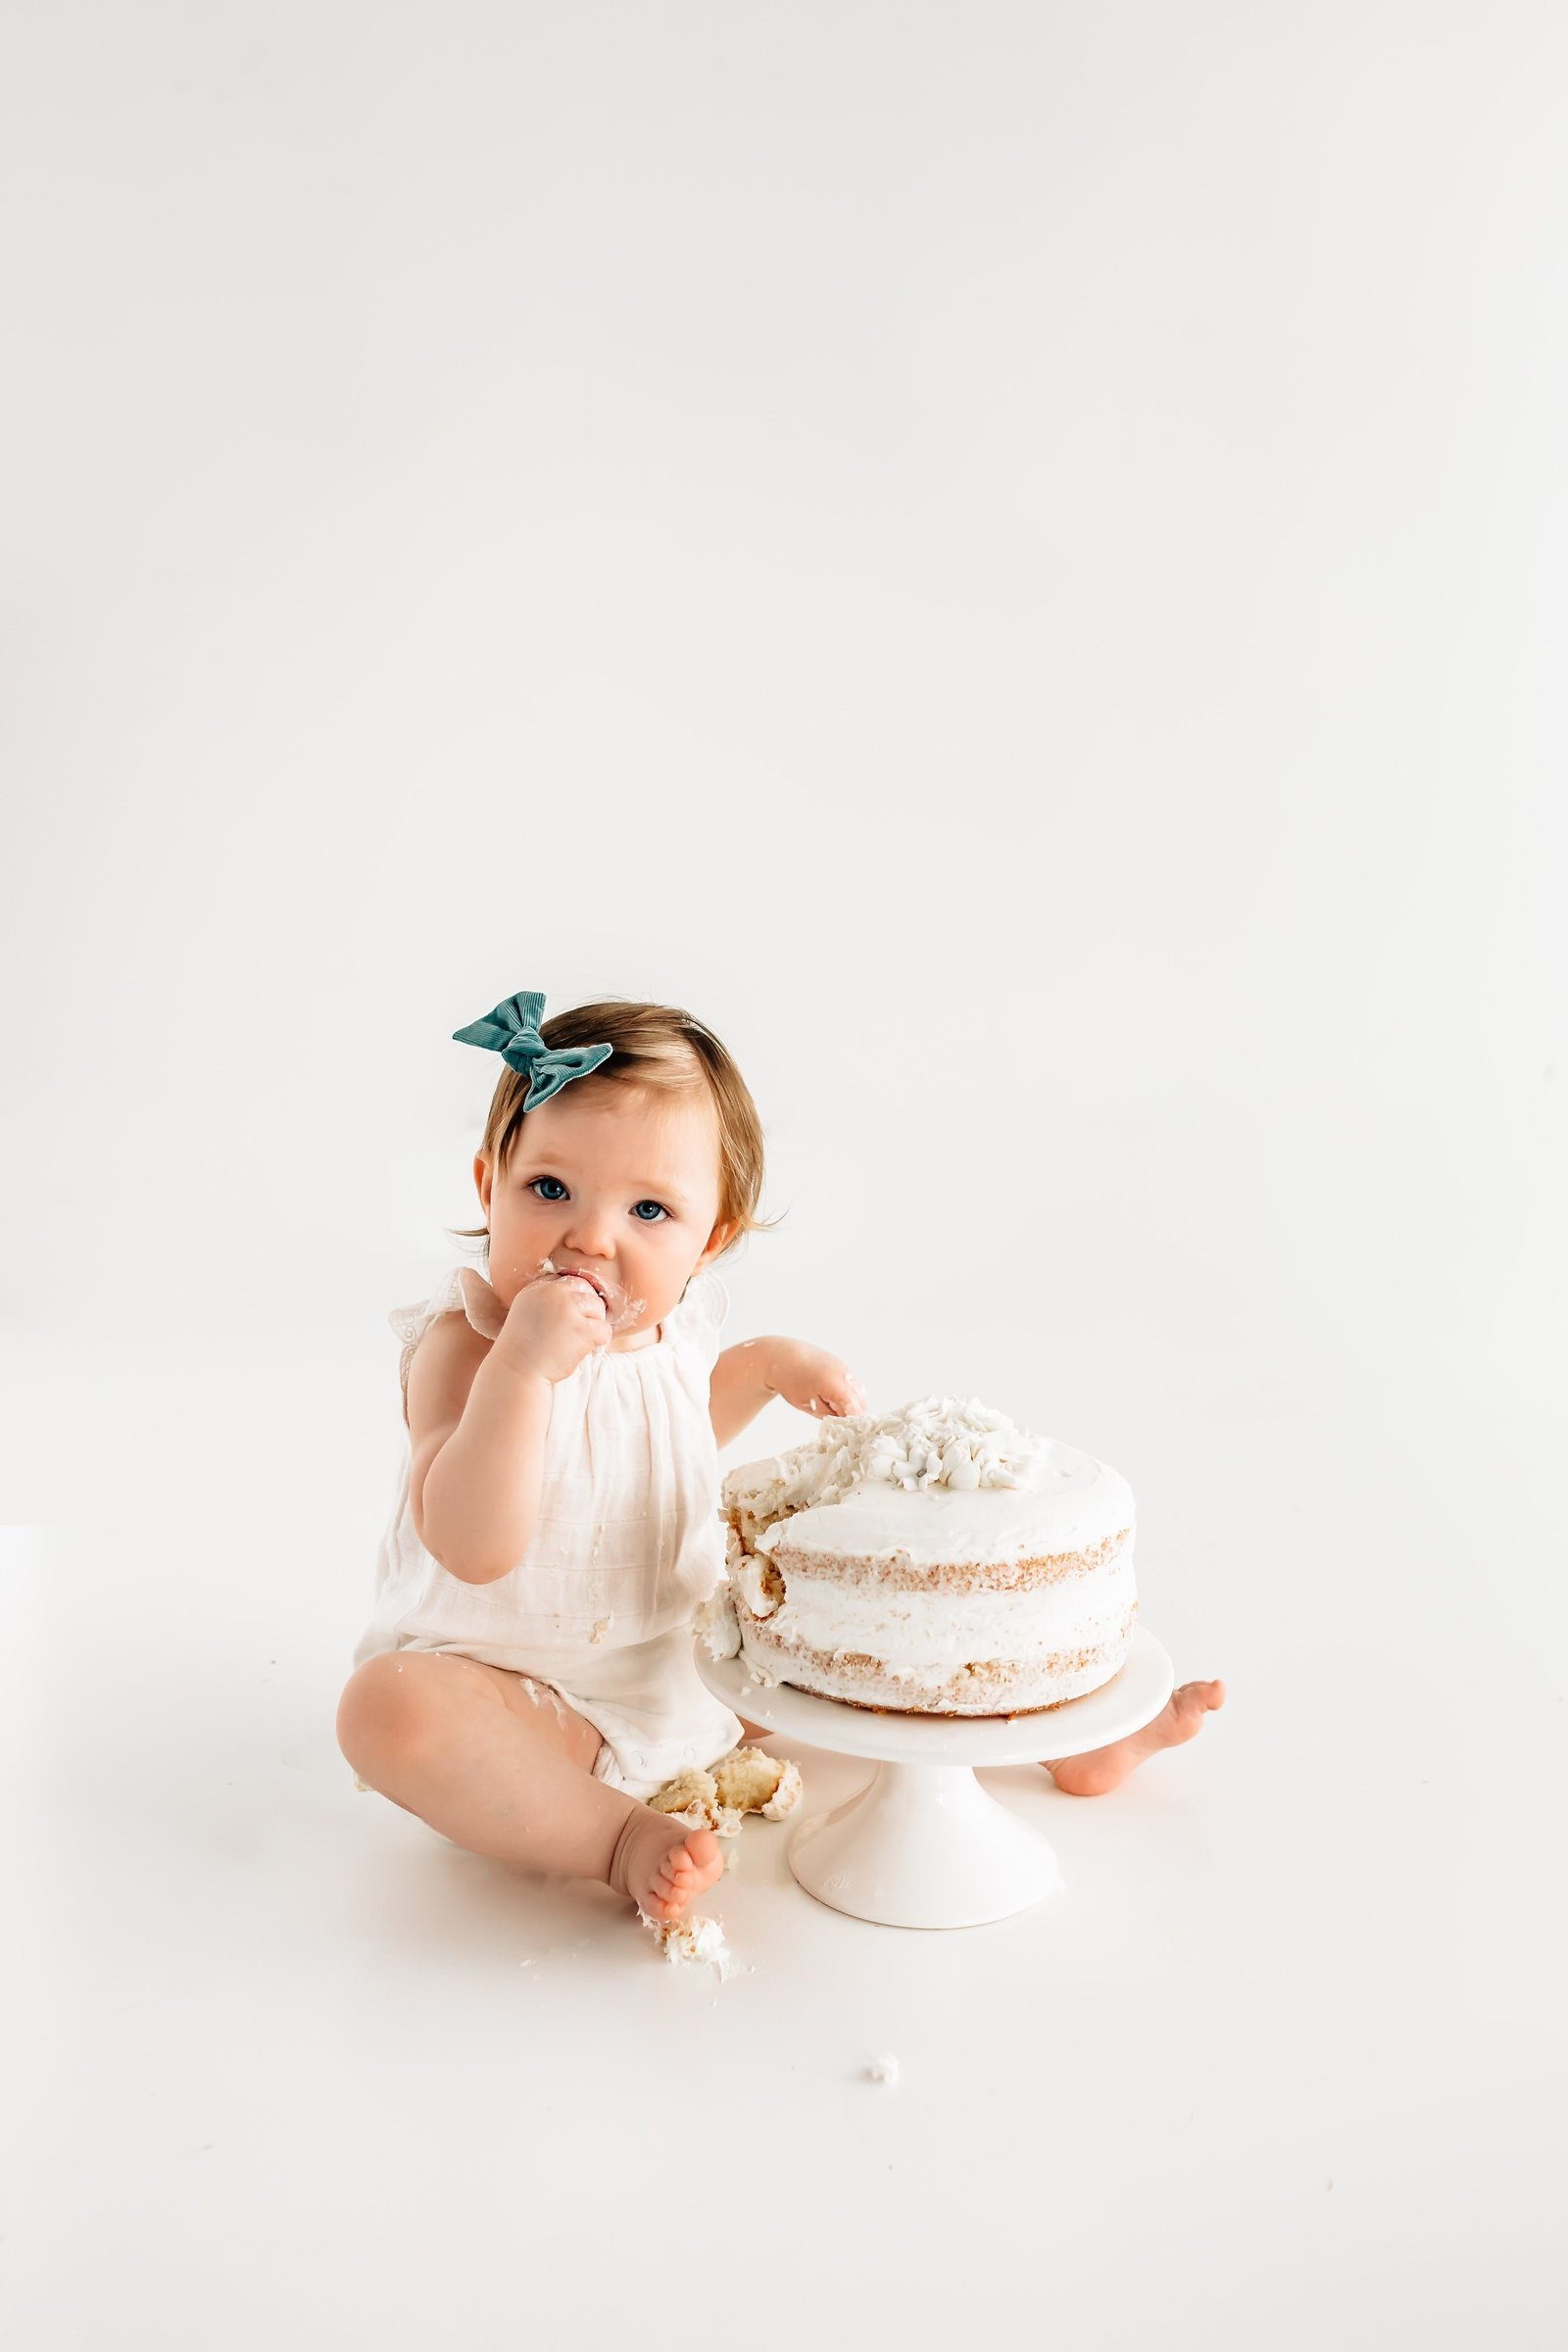 St_Louis_Baby_Photographer_Kelly_Laramore_Photography_112